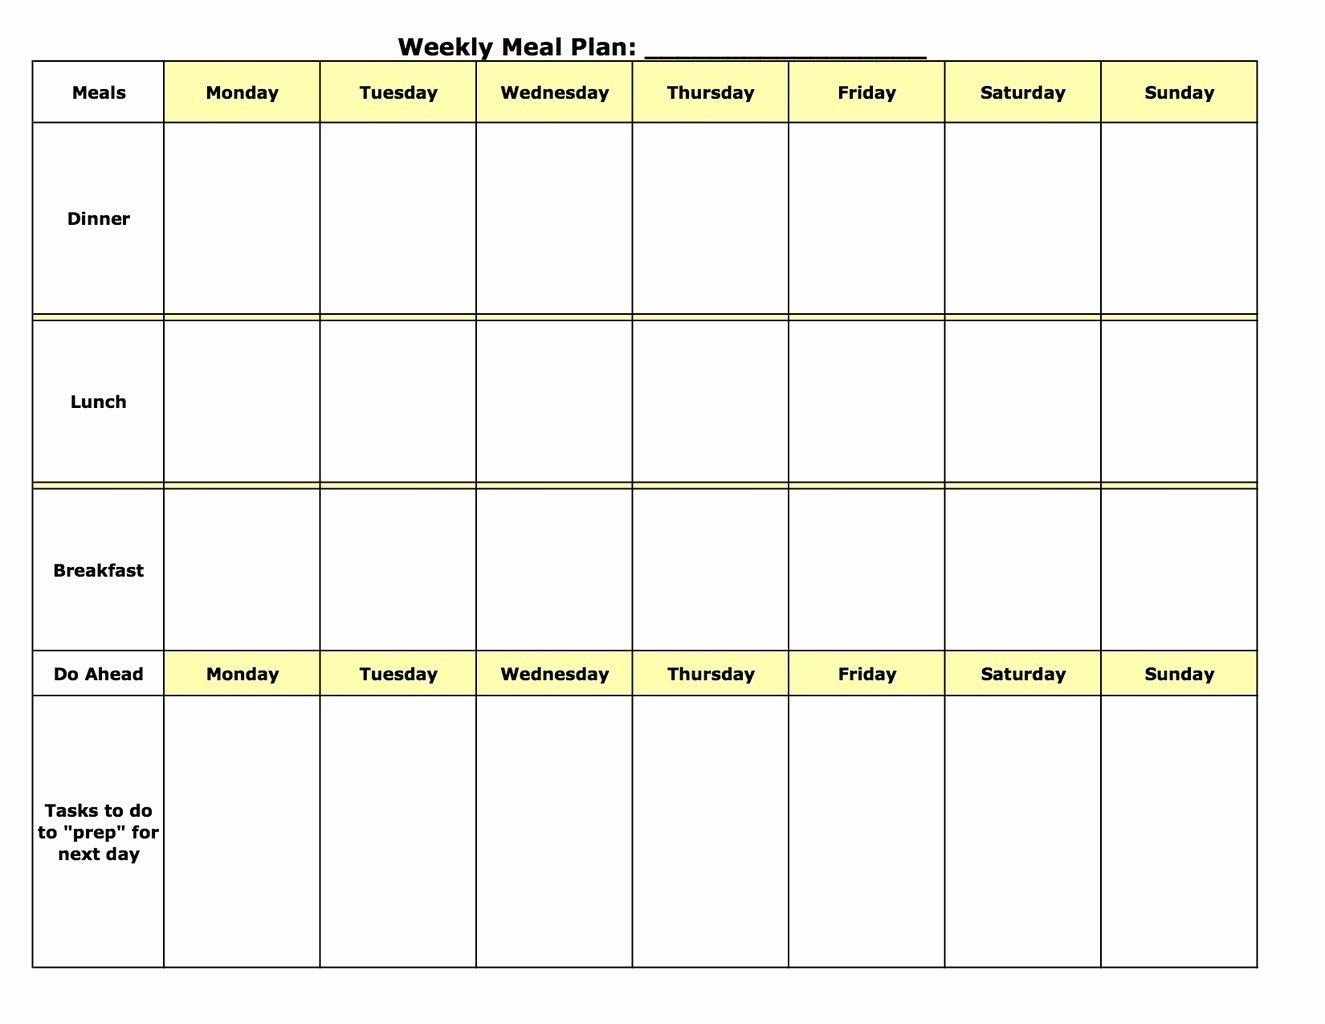 Weekly Meal Planner Template Word Inspirational Meal Planning Template (With Images)   Weekly in Blank Meal Pages Two Week Dinner Graphics